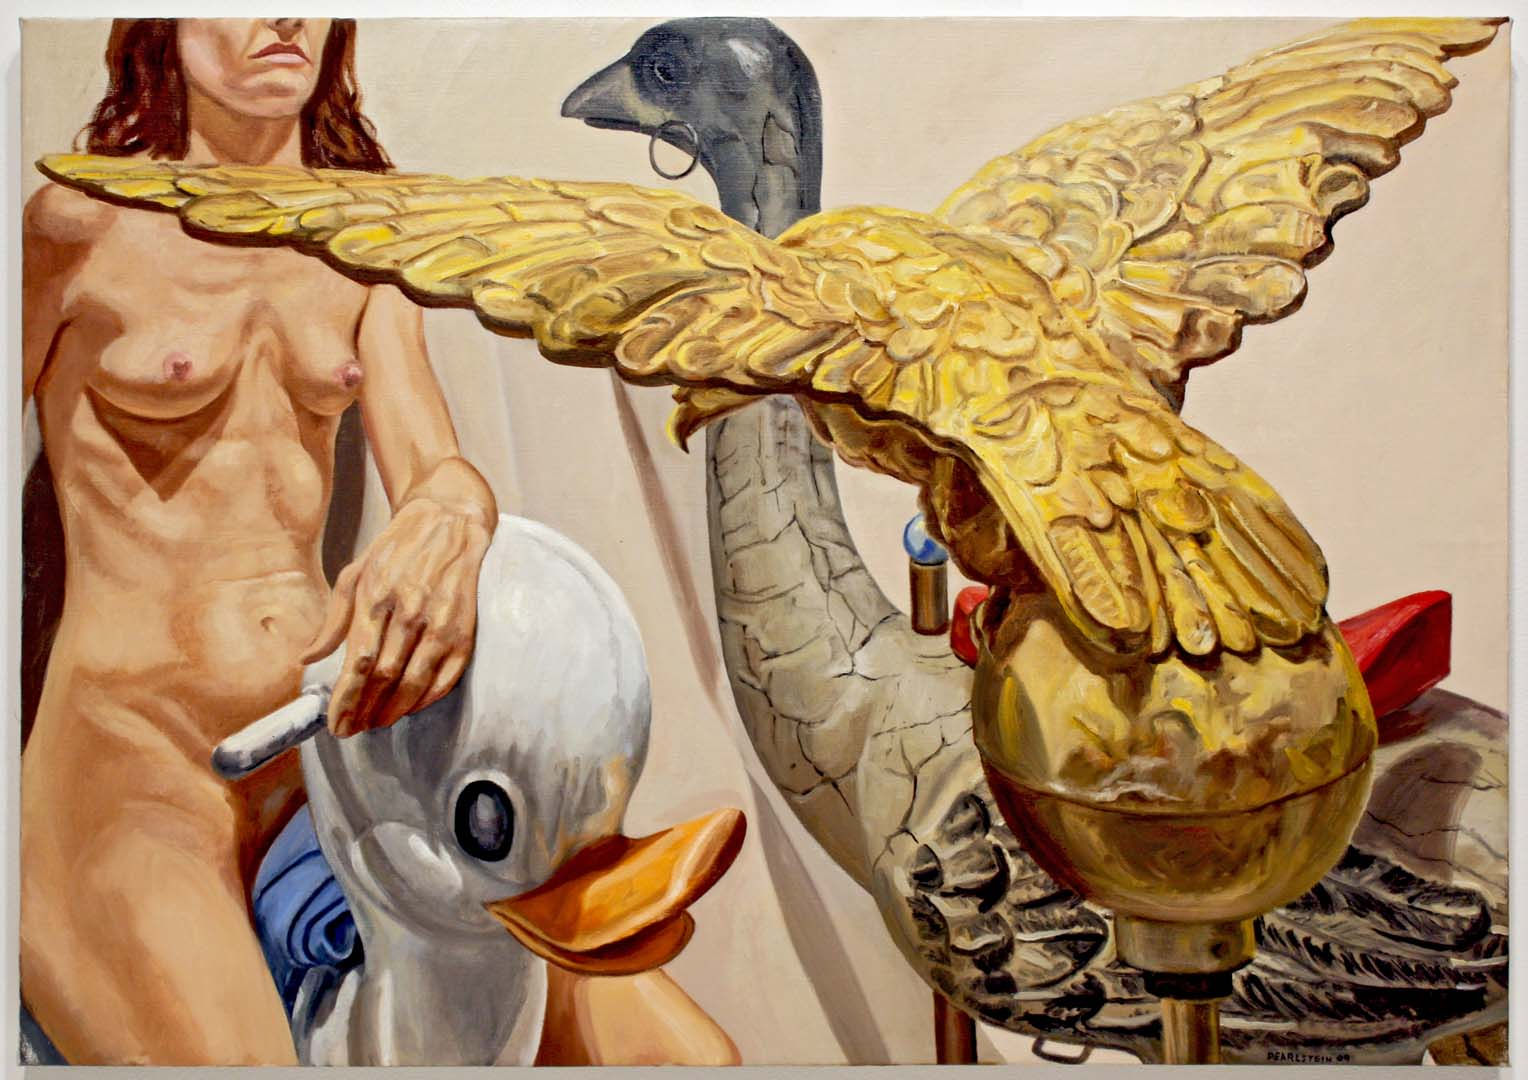 2009 Model with American Eagle Weathervane Oil on Canvas 24 x 34